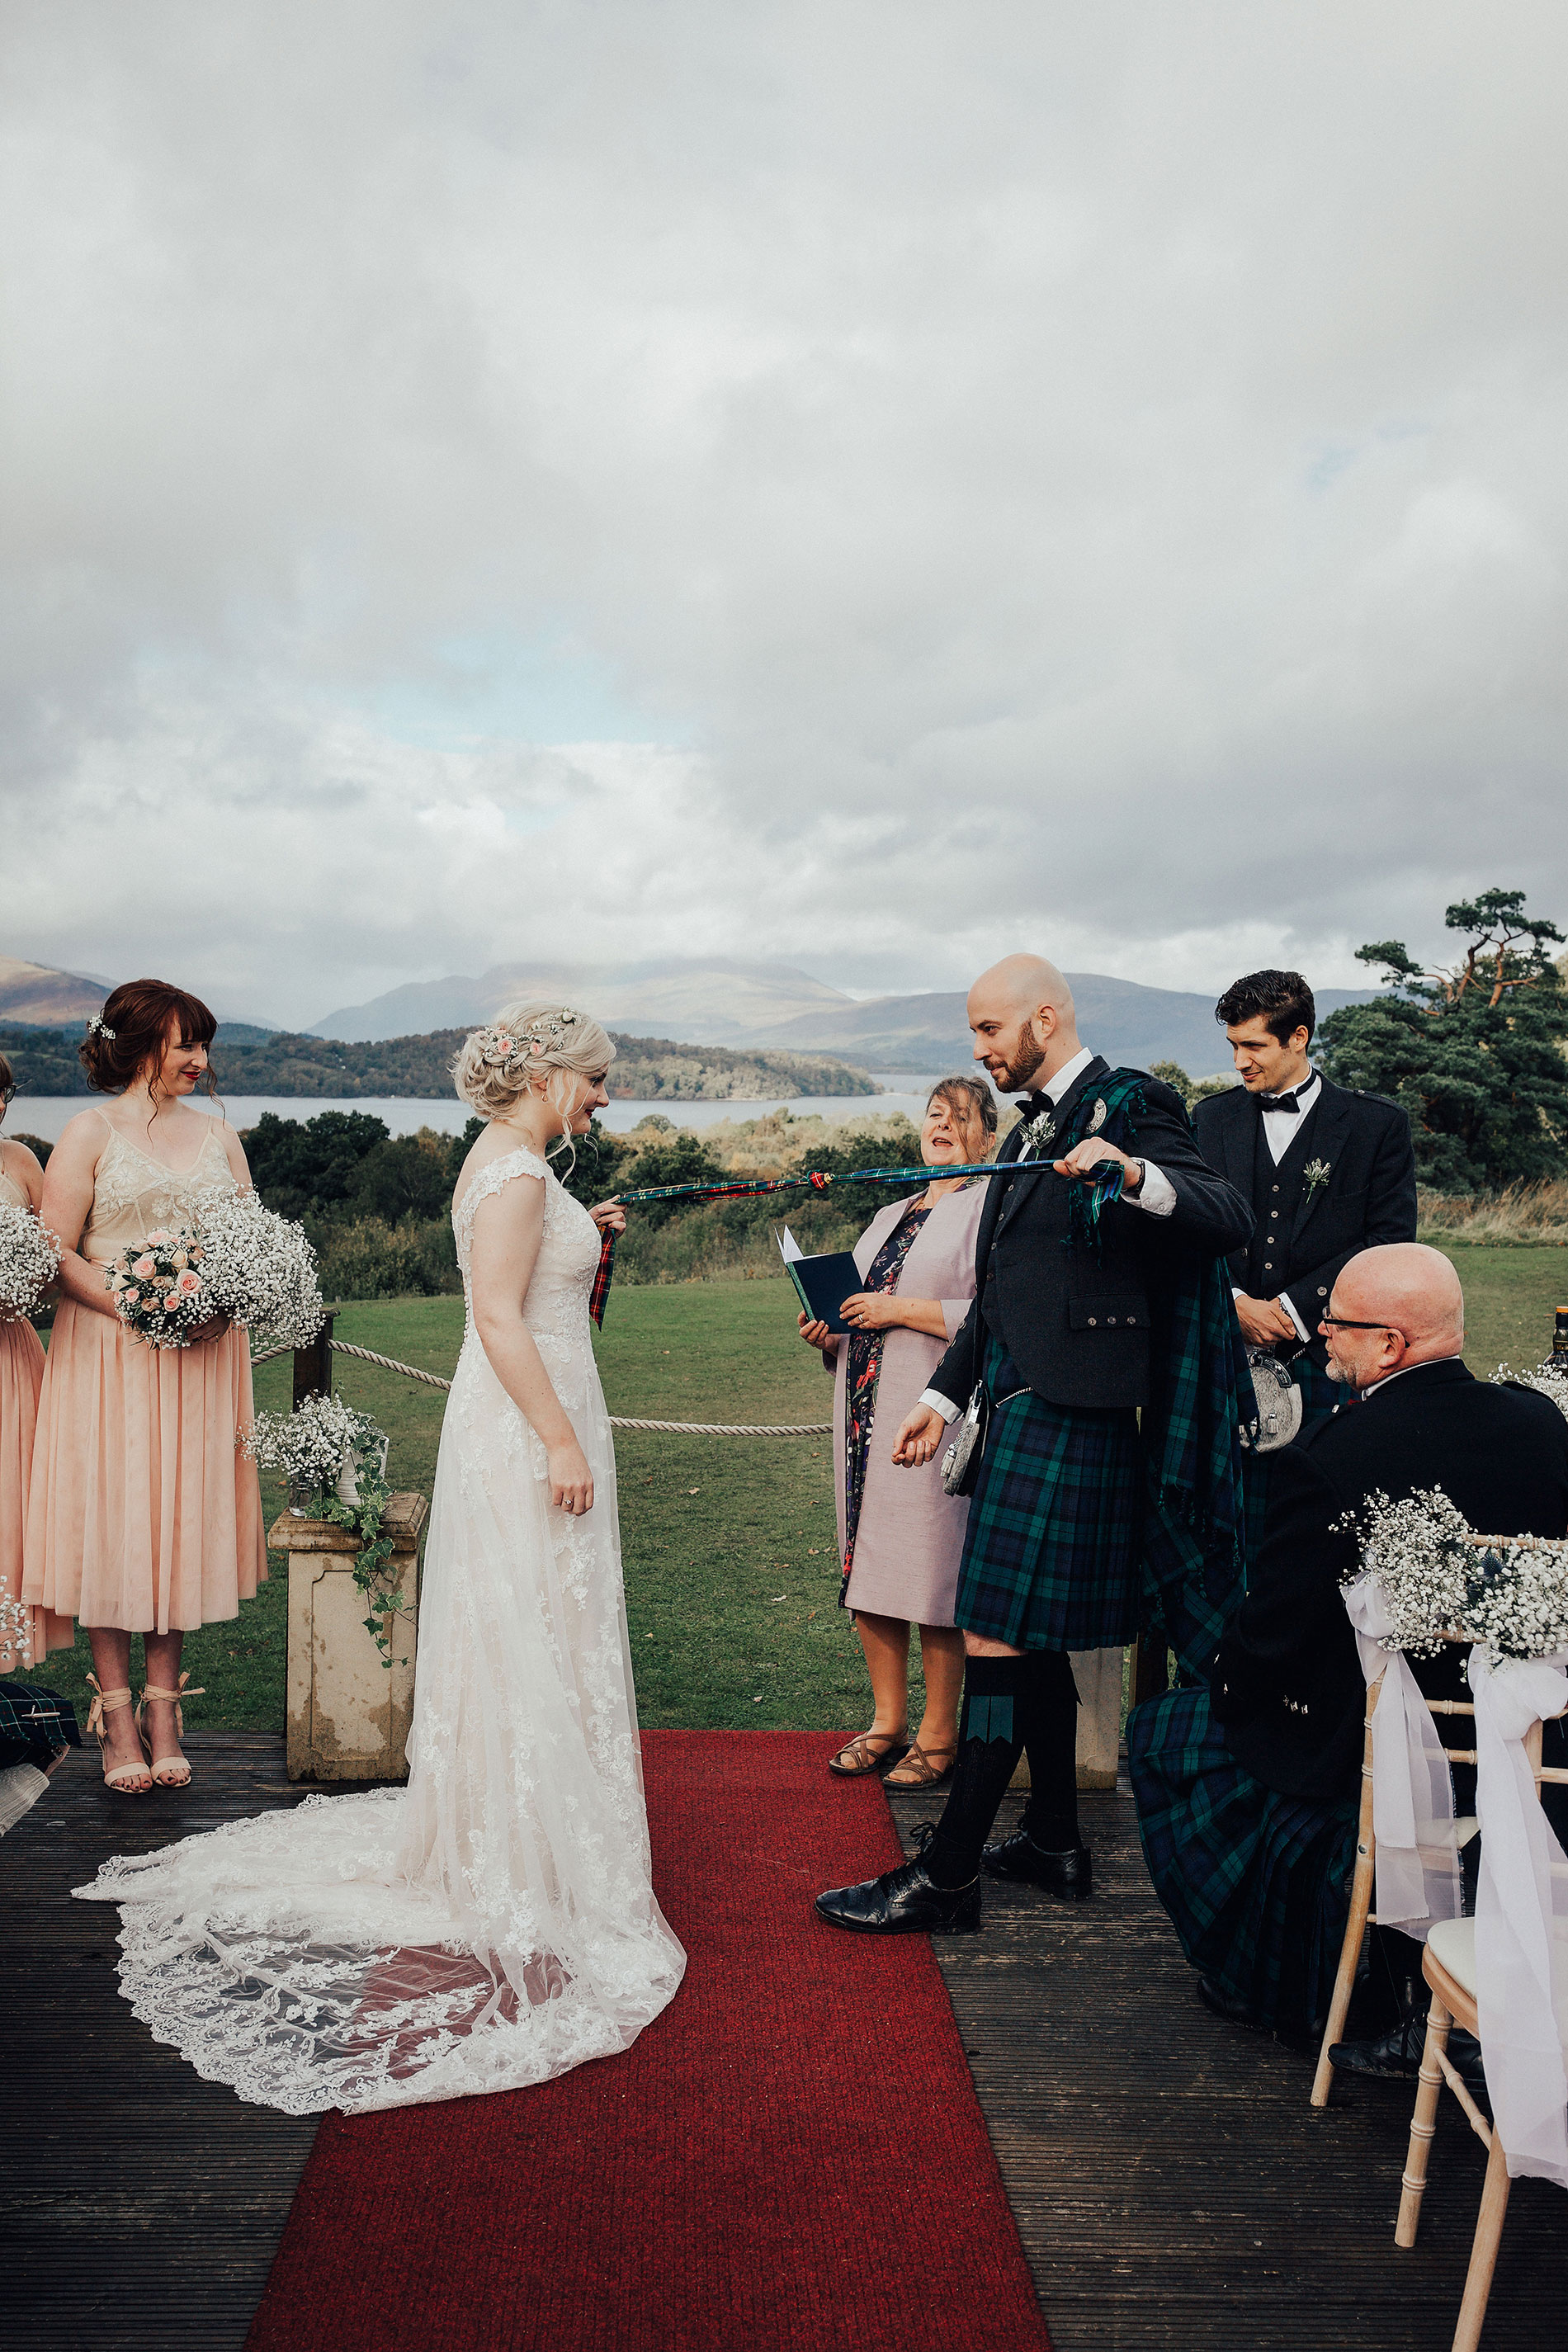 BOTURICH_CASTLE_WEDDING_PHOTOGRAPHER_PJ_PHILLIPS_PHOTOGRAPHY_76.jpg